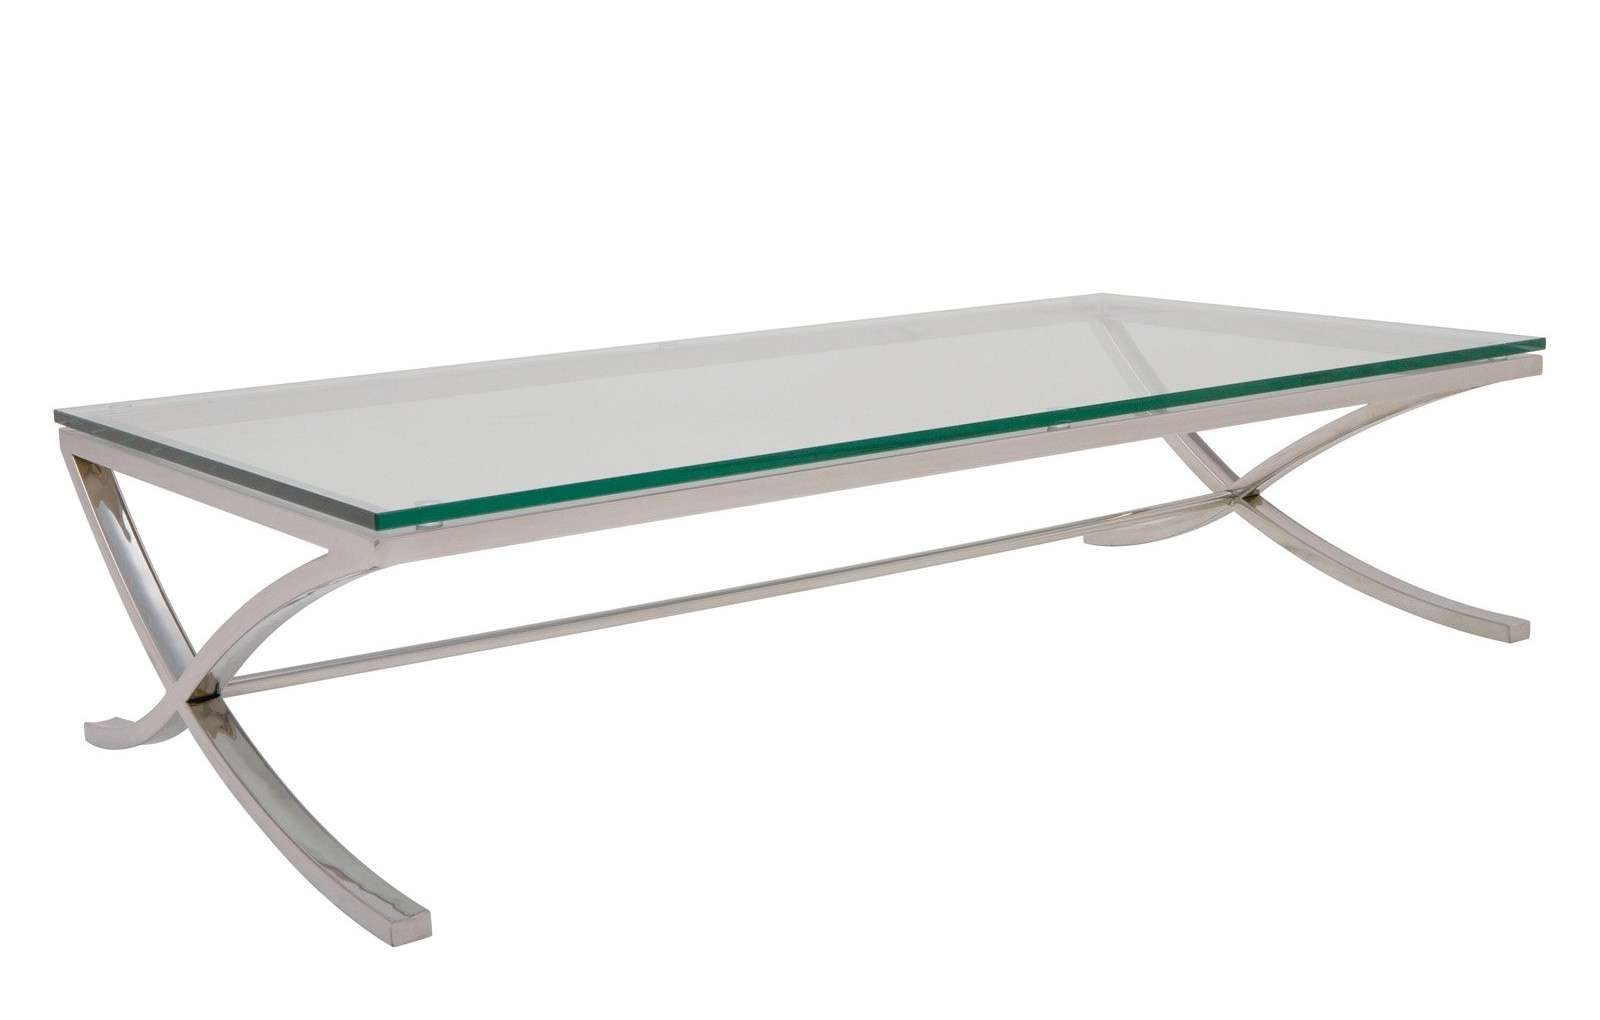 Coffee Tables Ideas: Modern Chrome And Glass Coffee Table Ikea For Newest Glass Chrome Coffee Tables (View 4 of 20)